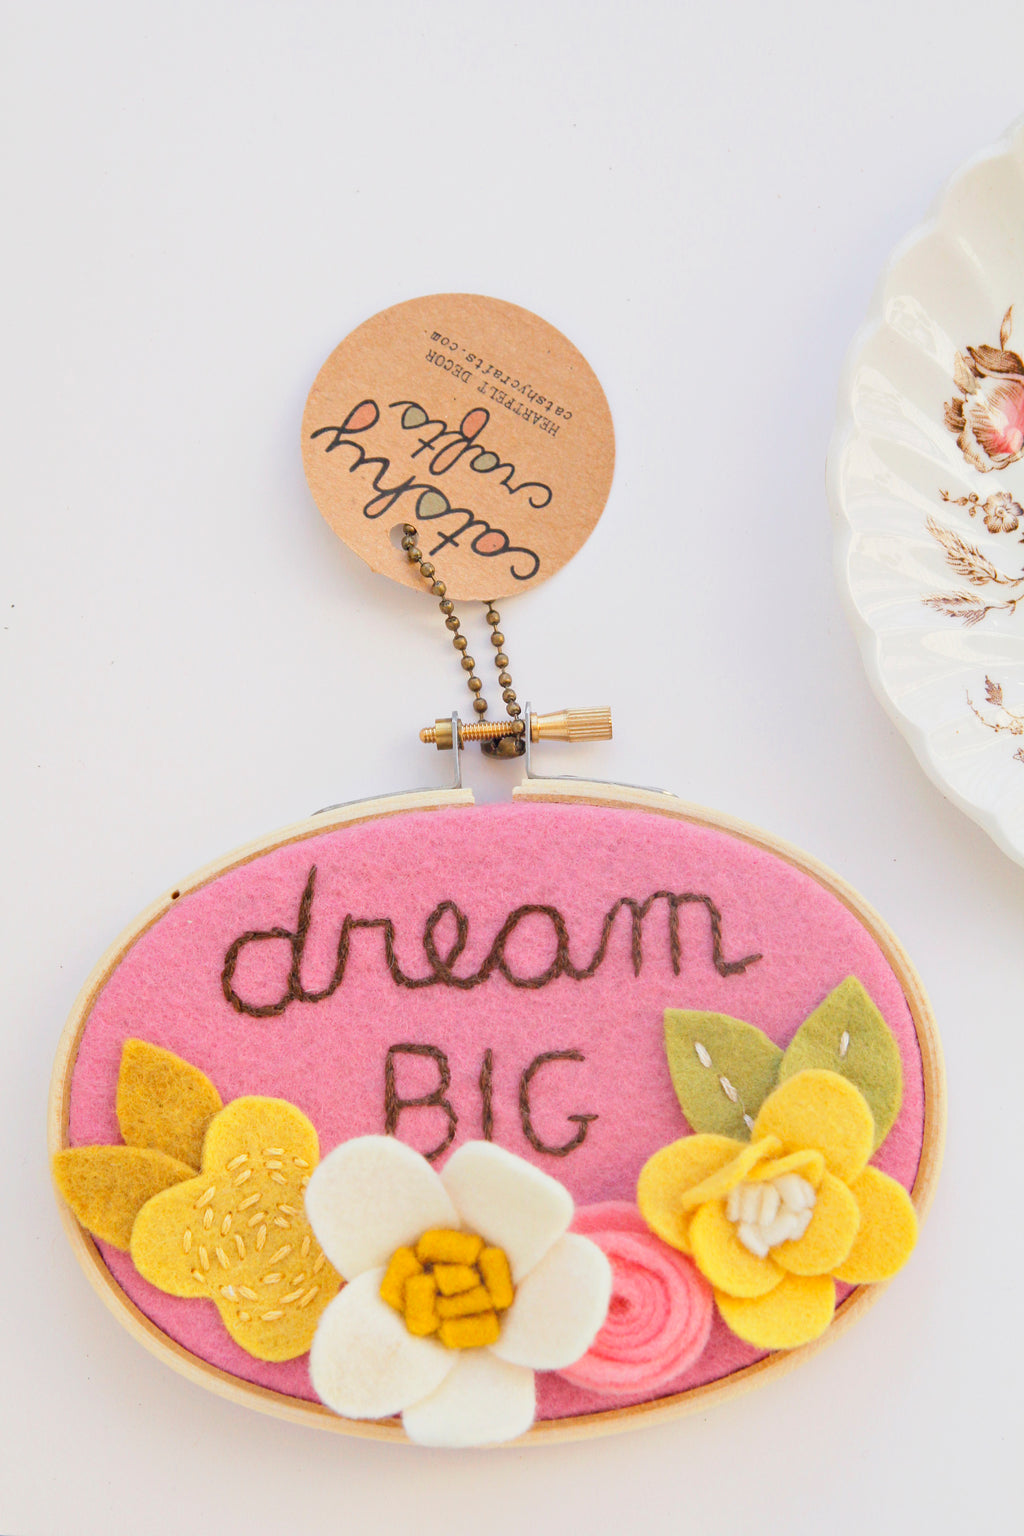 Dream Big Felt Flower Embroidery Hoop Art 3 x 5